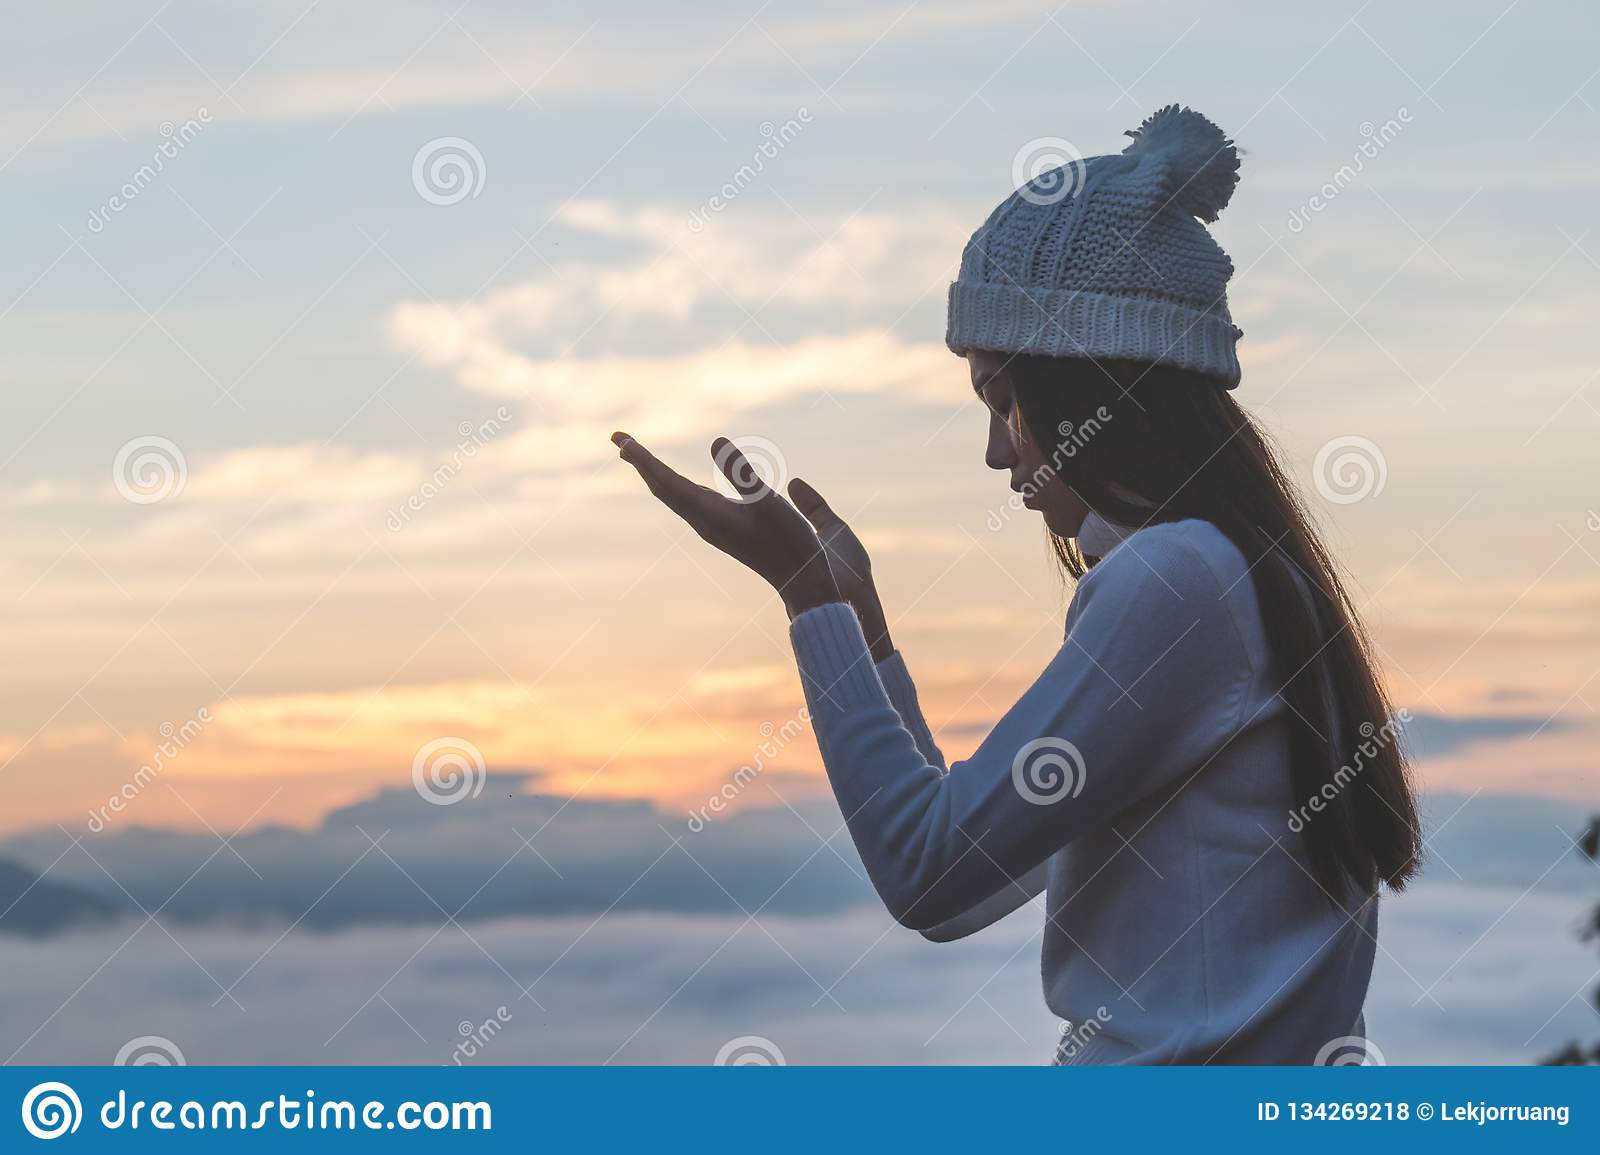 Young christian woman hands open palm up worship and praying to god at sunrise, Christian Religion concept background